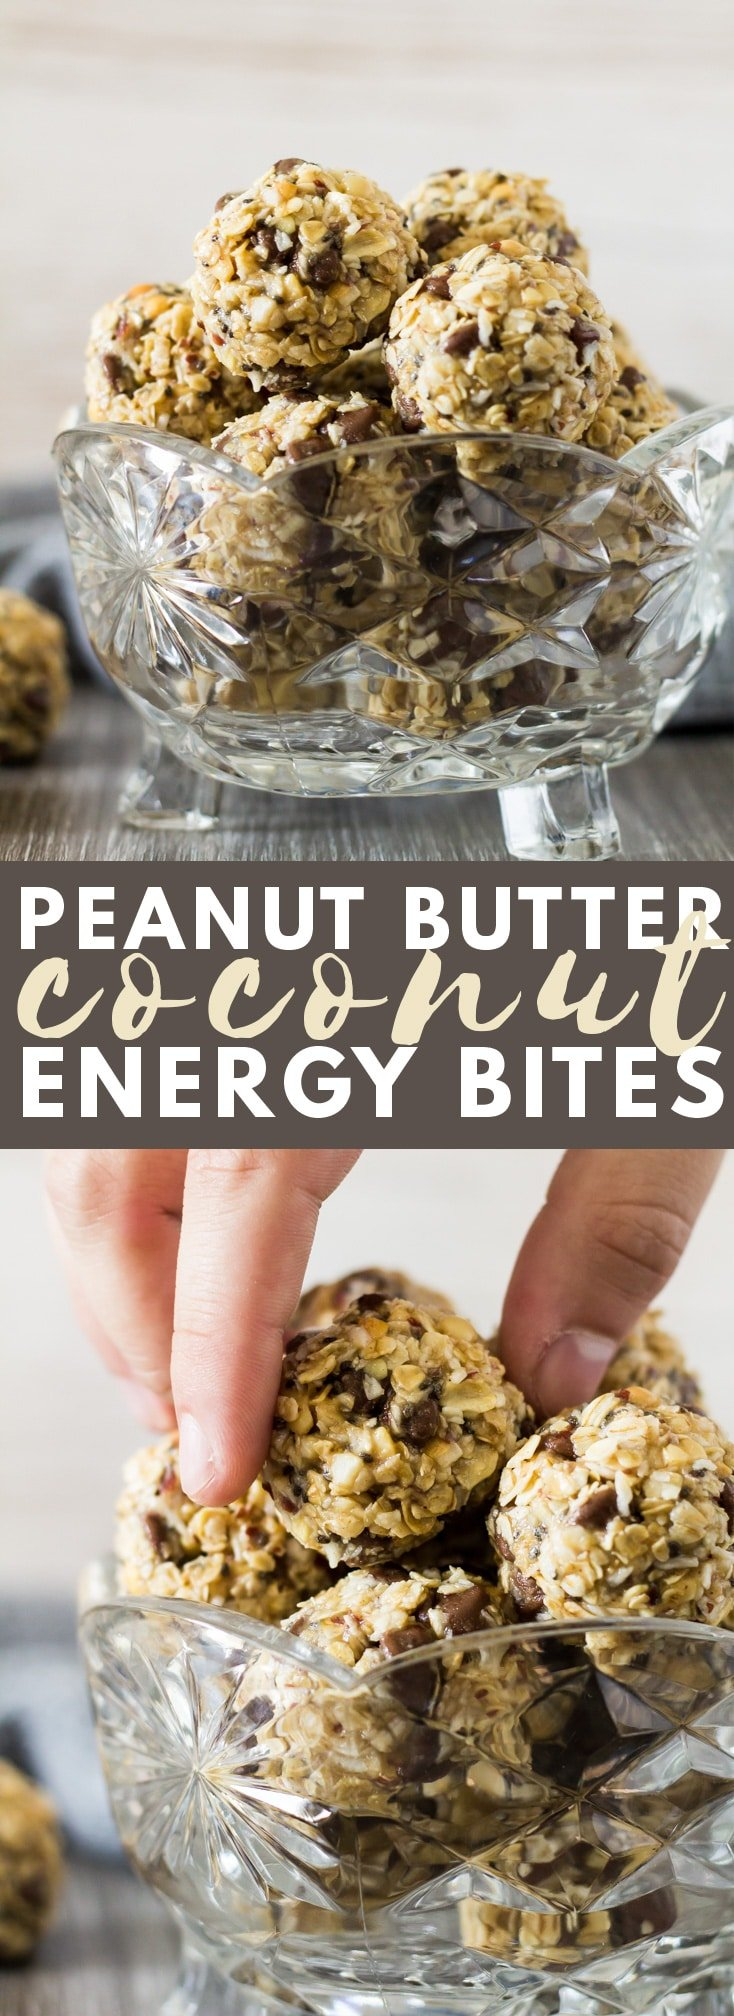 No-Bake Peanut Butter Coconut Energy Bites - Deliciously creamy and fudgy energy bites bursting with peanut butter flavour, and loaded with chocolate chips. A healthy protein-packed breakfast or snack!